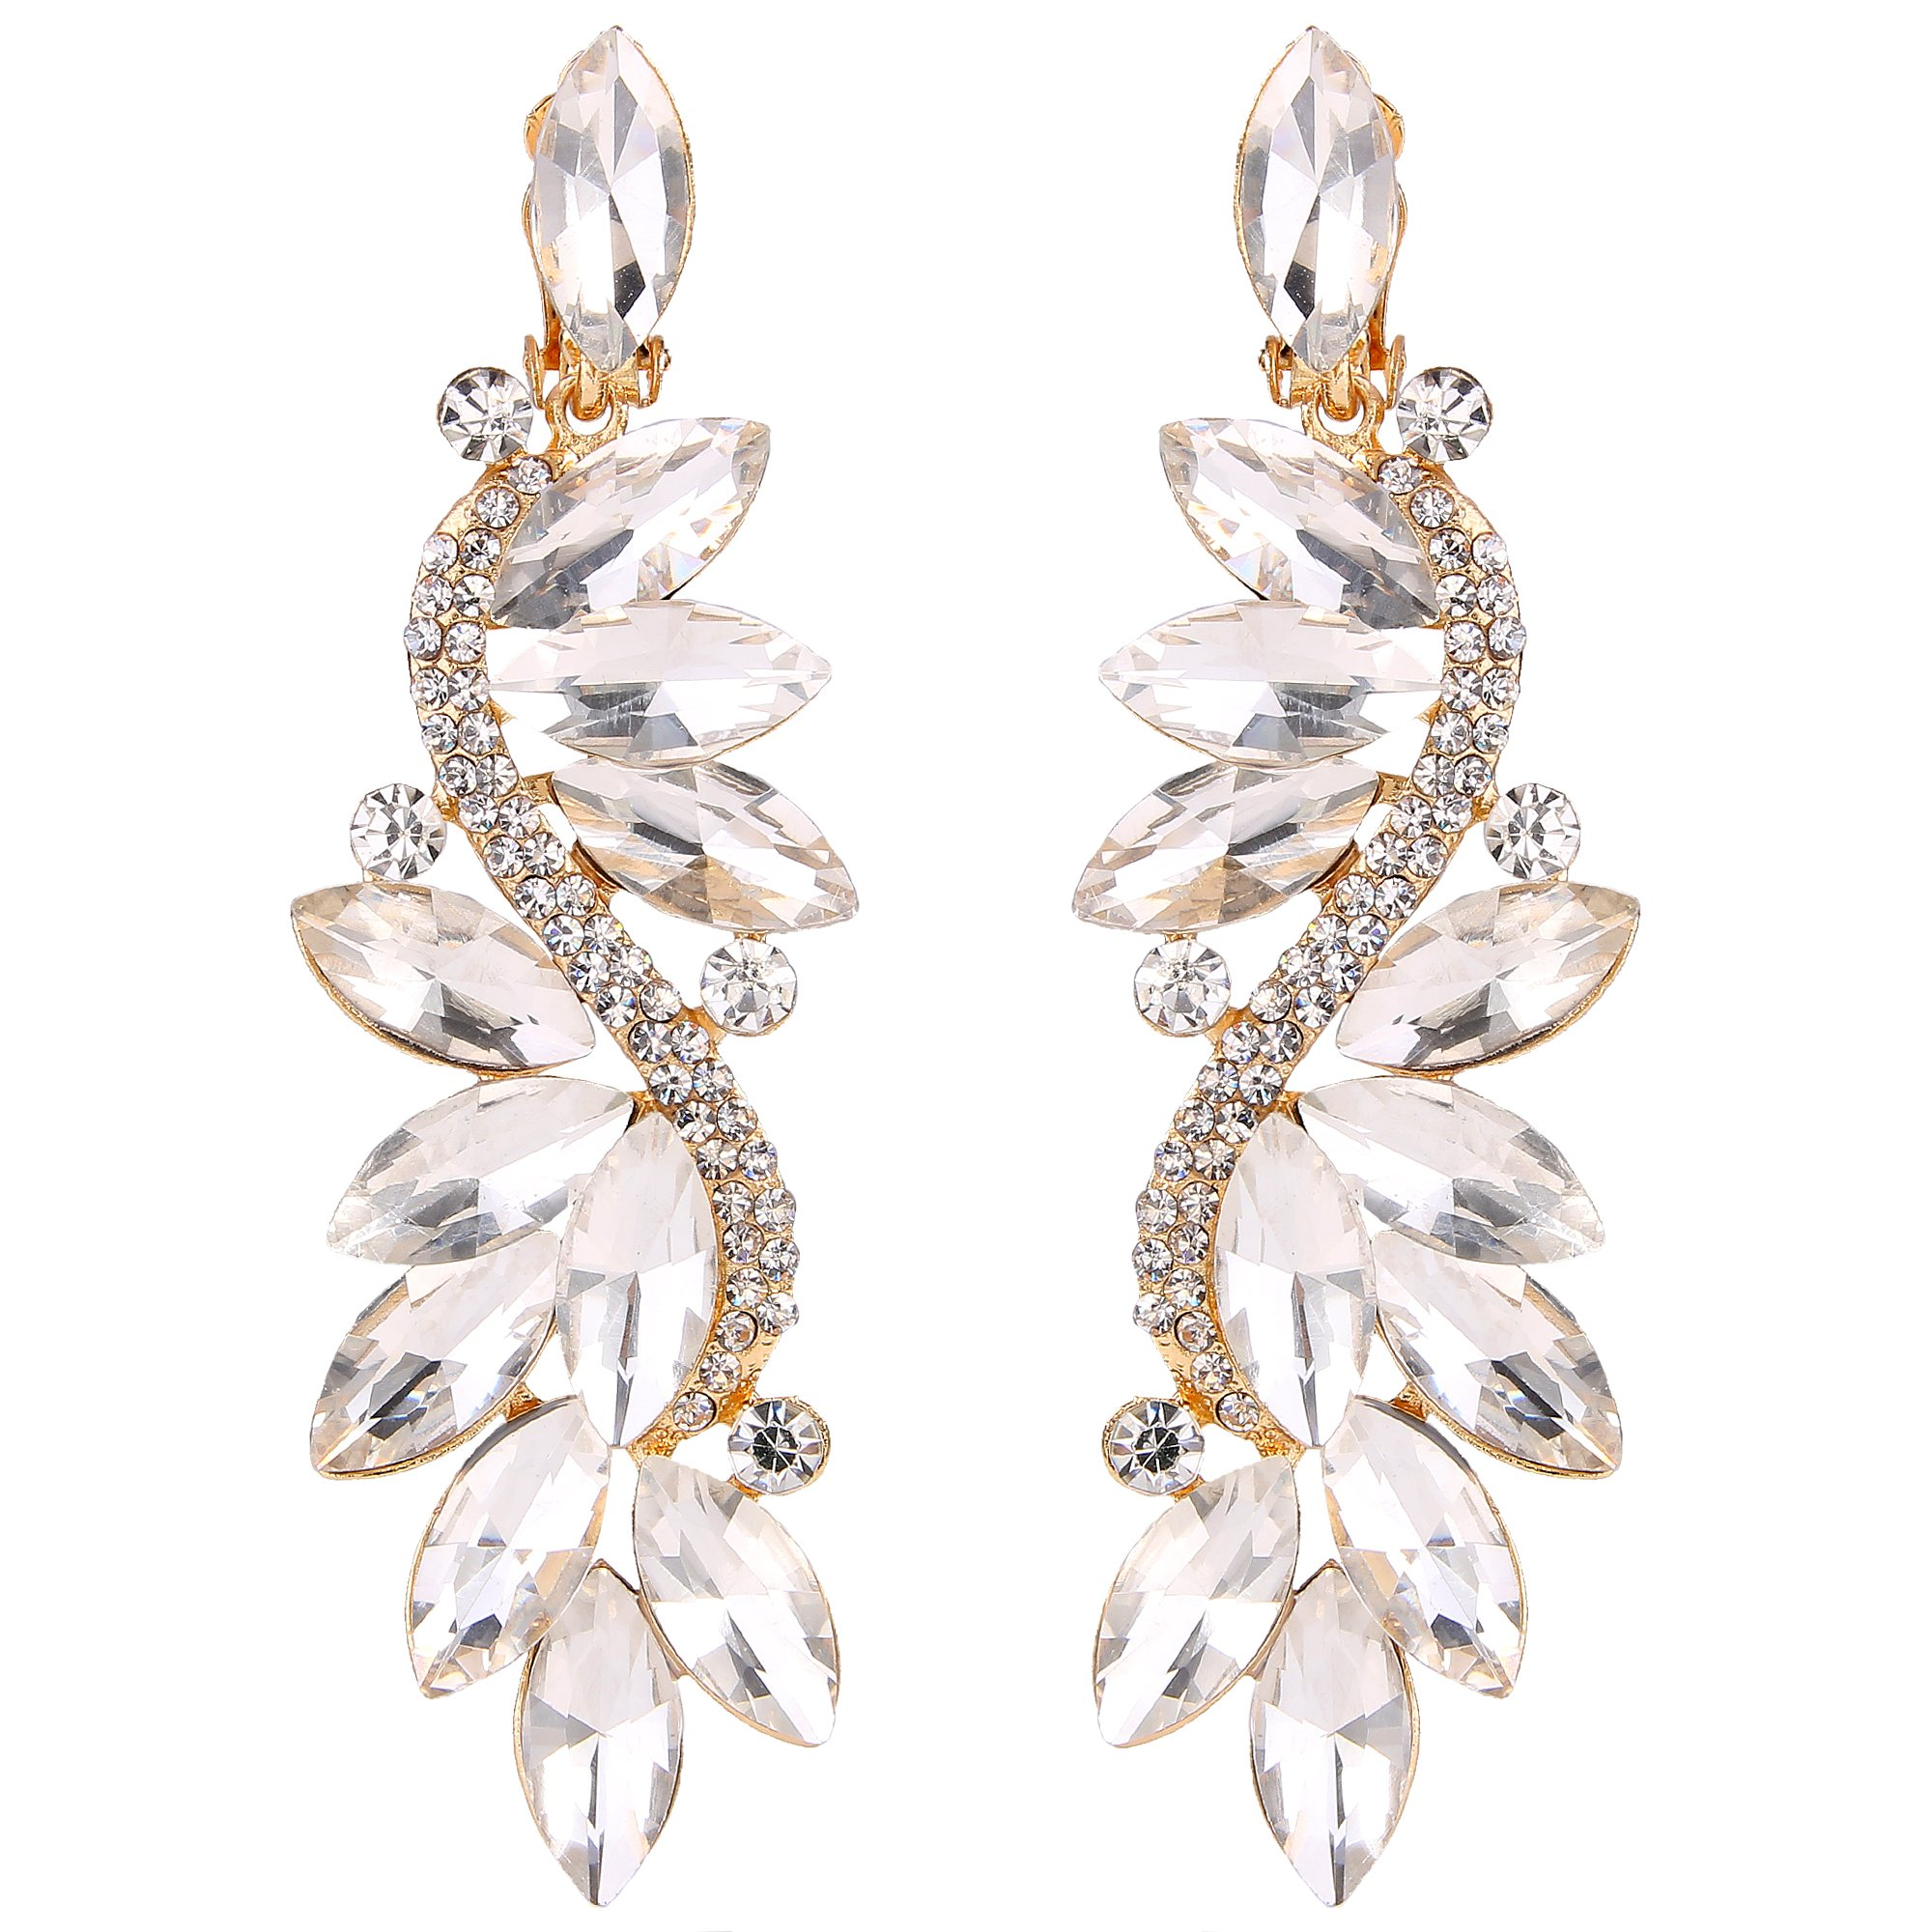 BriLove Gold-Toned Clip-On Dangle Earrings for Women Wedding Bridal Crystal Multi Marquise Filigree Flower Chandelier Earrings Clear